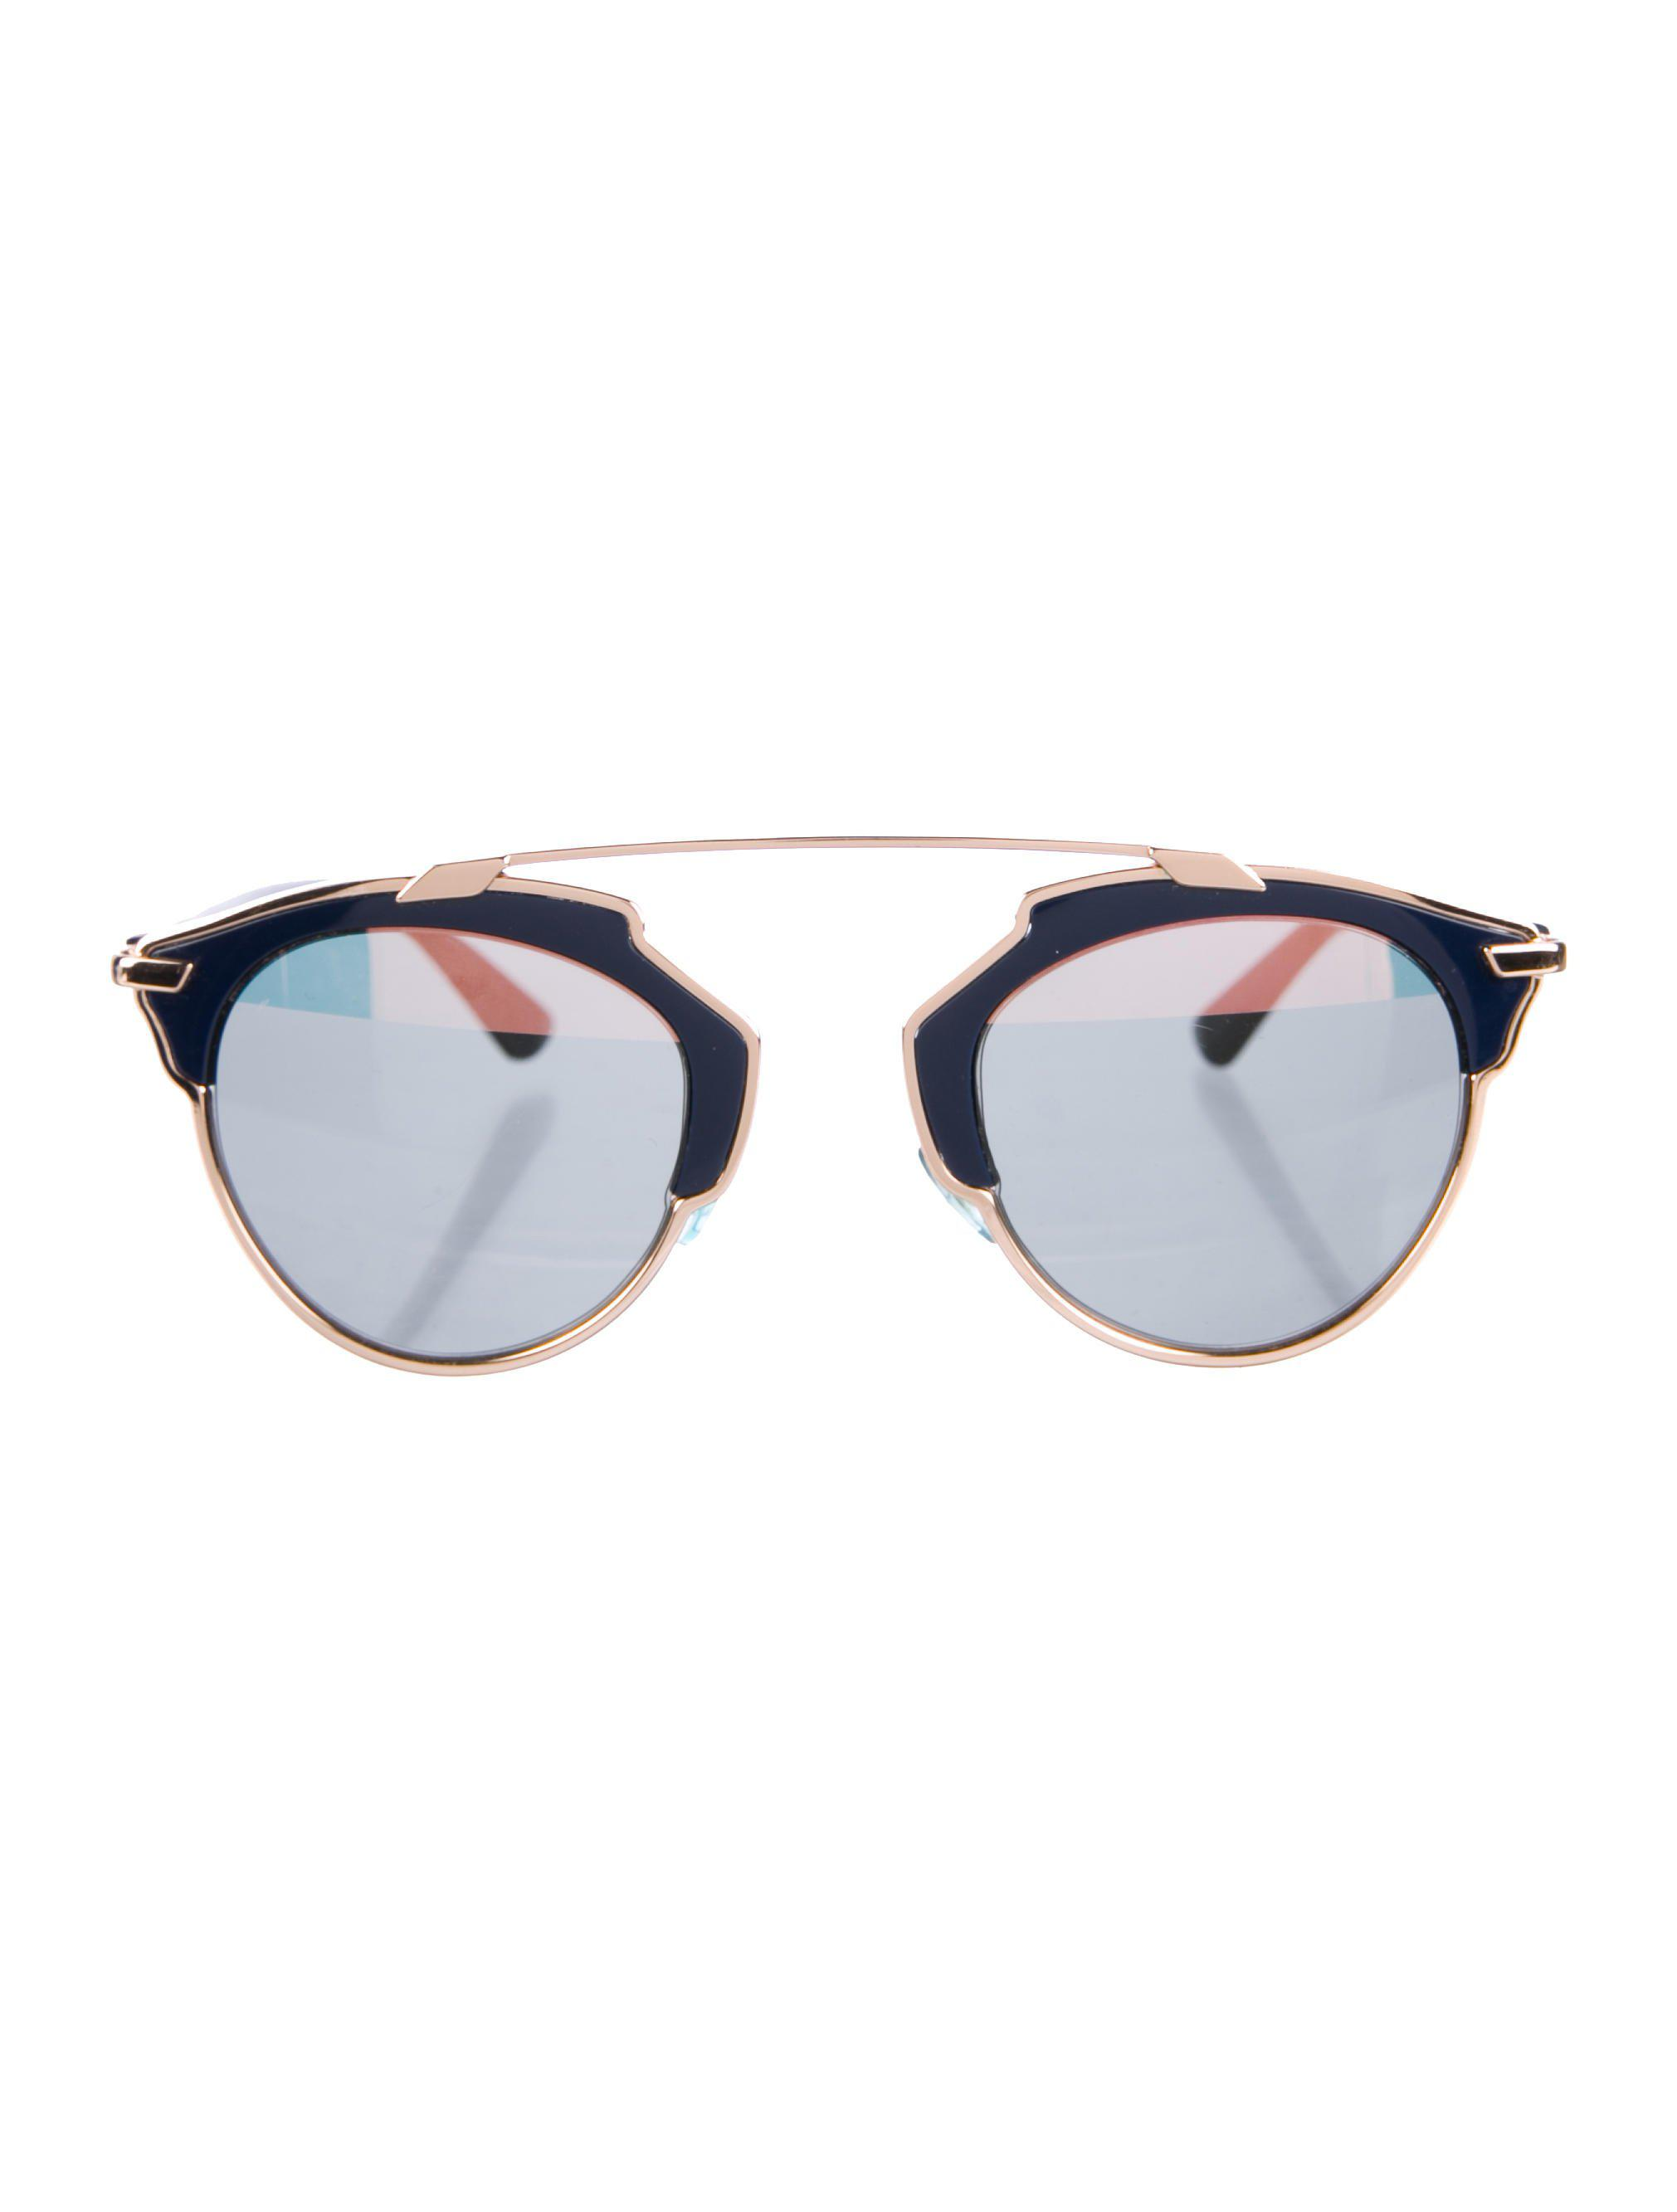 a8631449a764 Lyst - Dior So Real Sunglasses Rose in Metallic